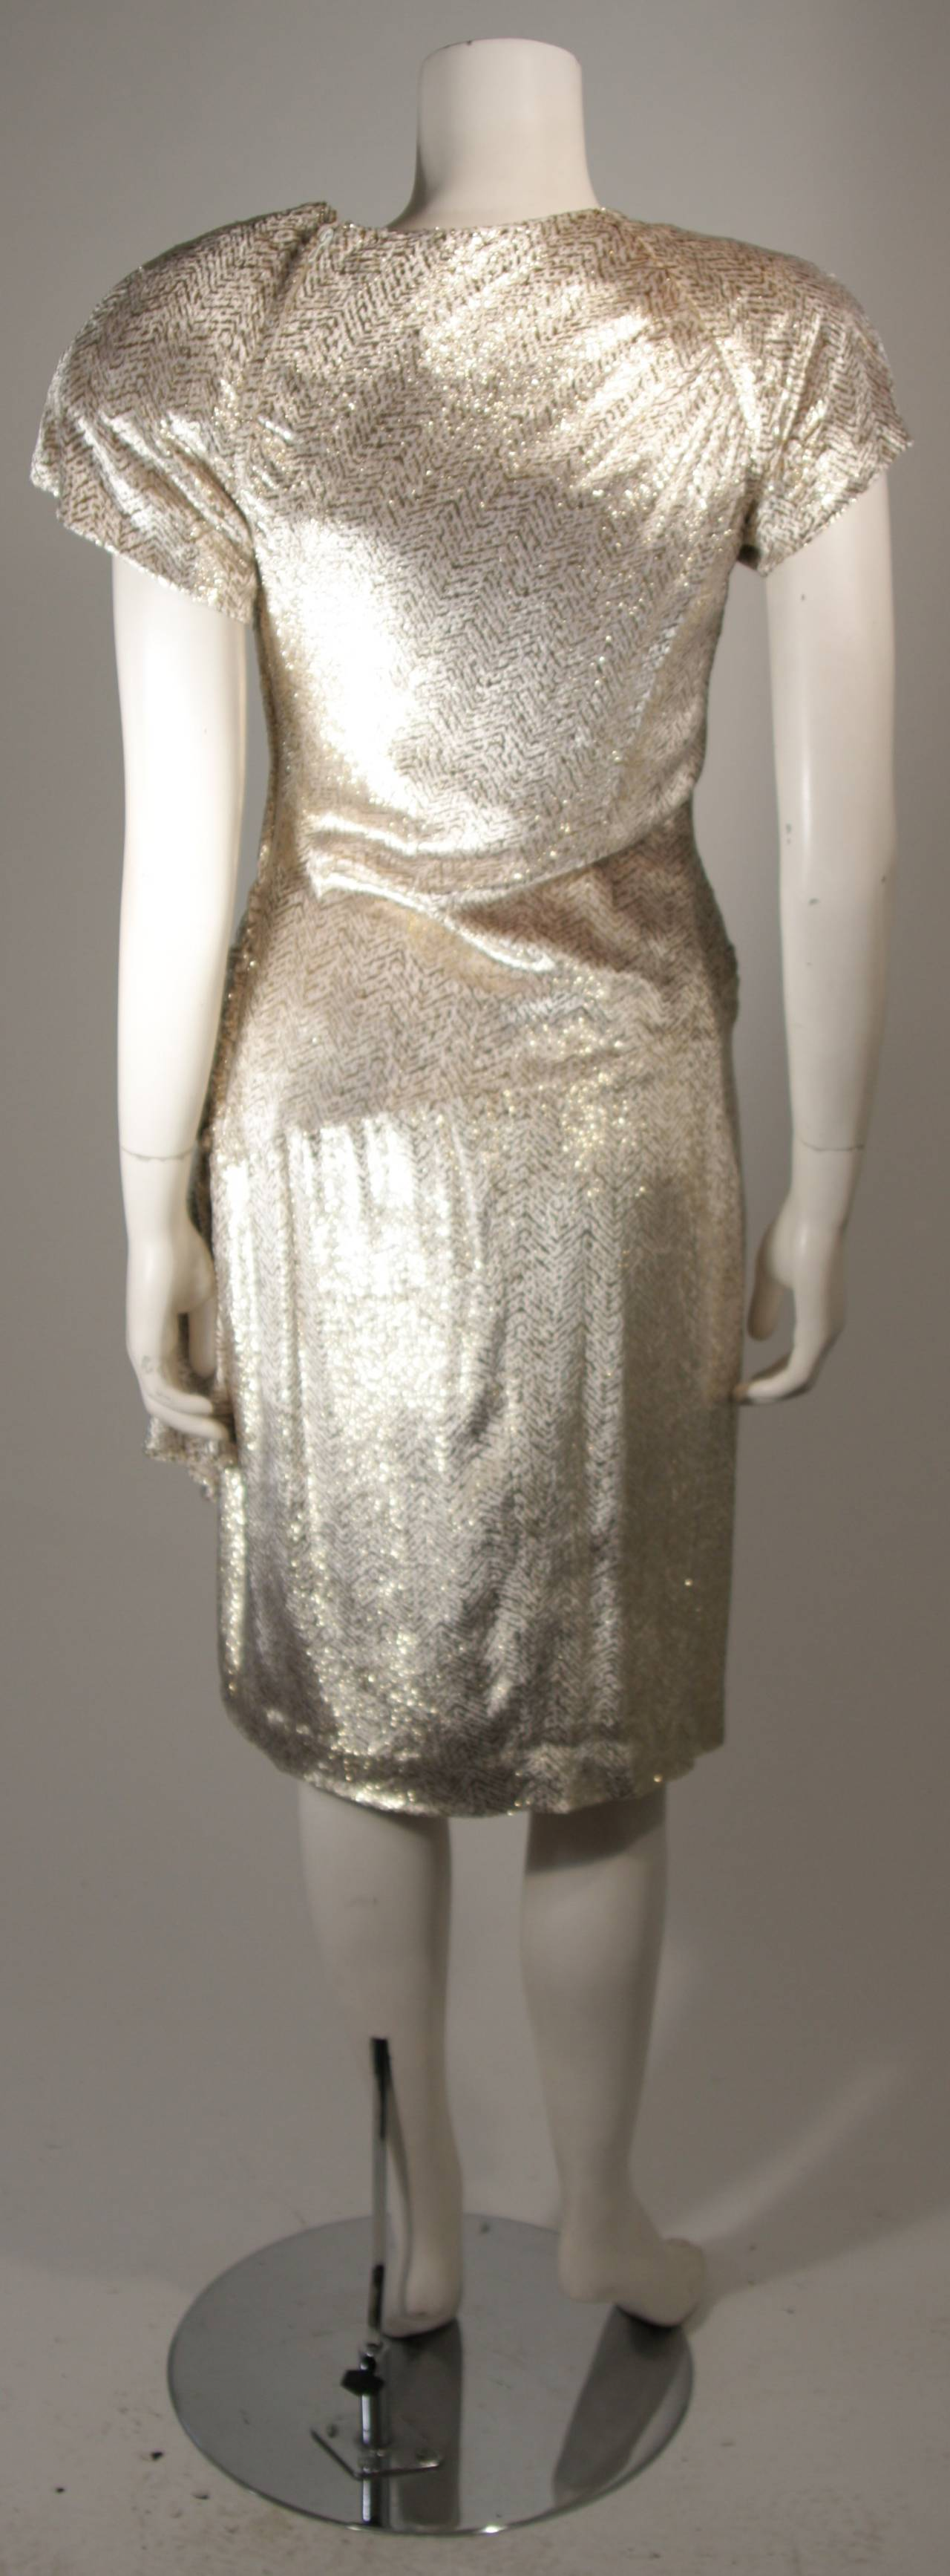 Vicky Tiel Ivory and Gold Velvet Texture Cocktail Dress Size 38 For Sale 3